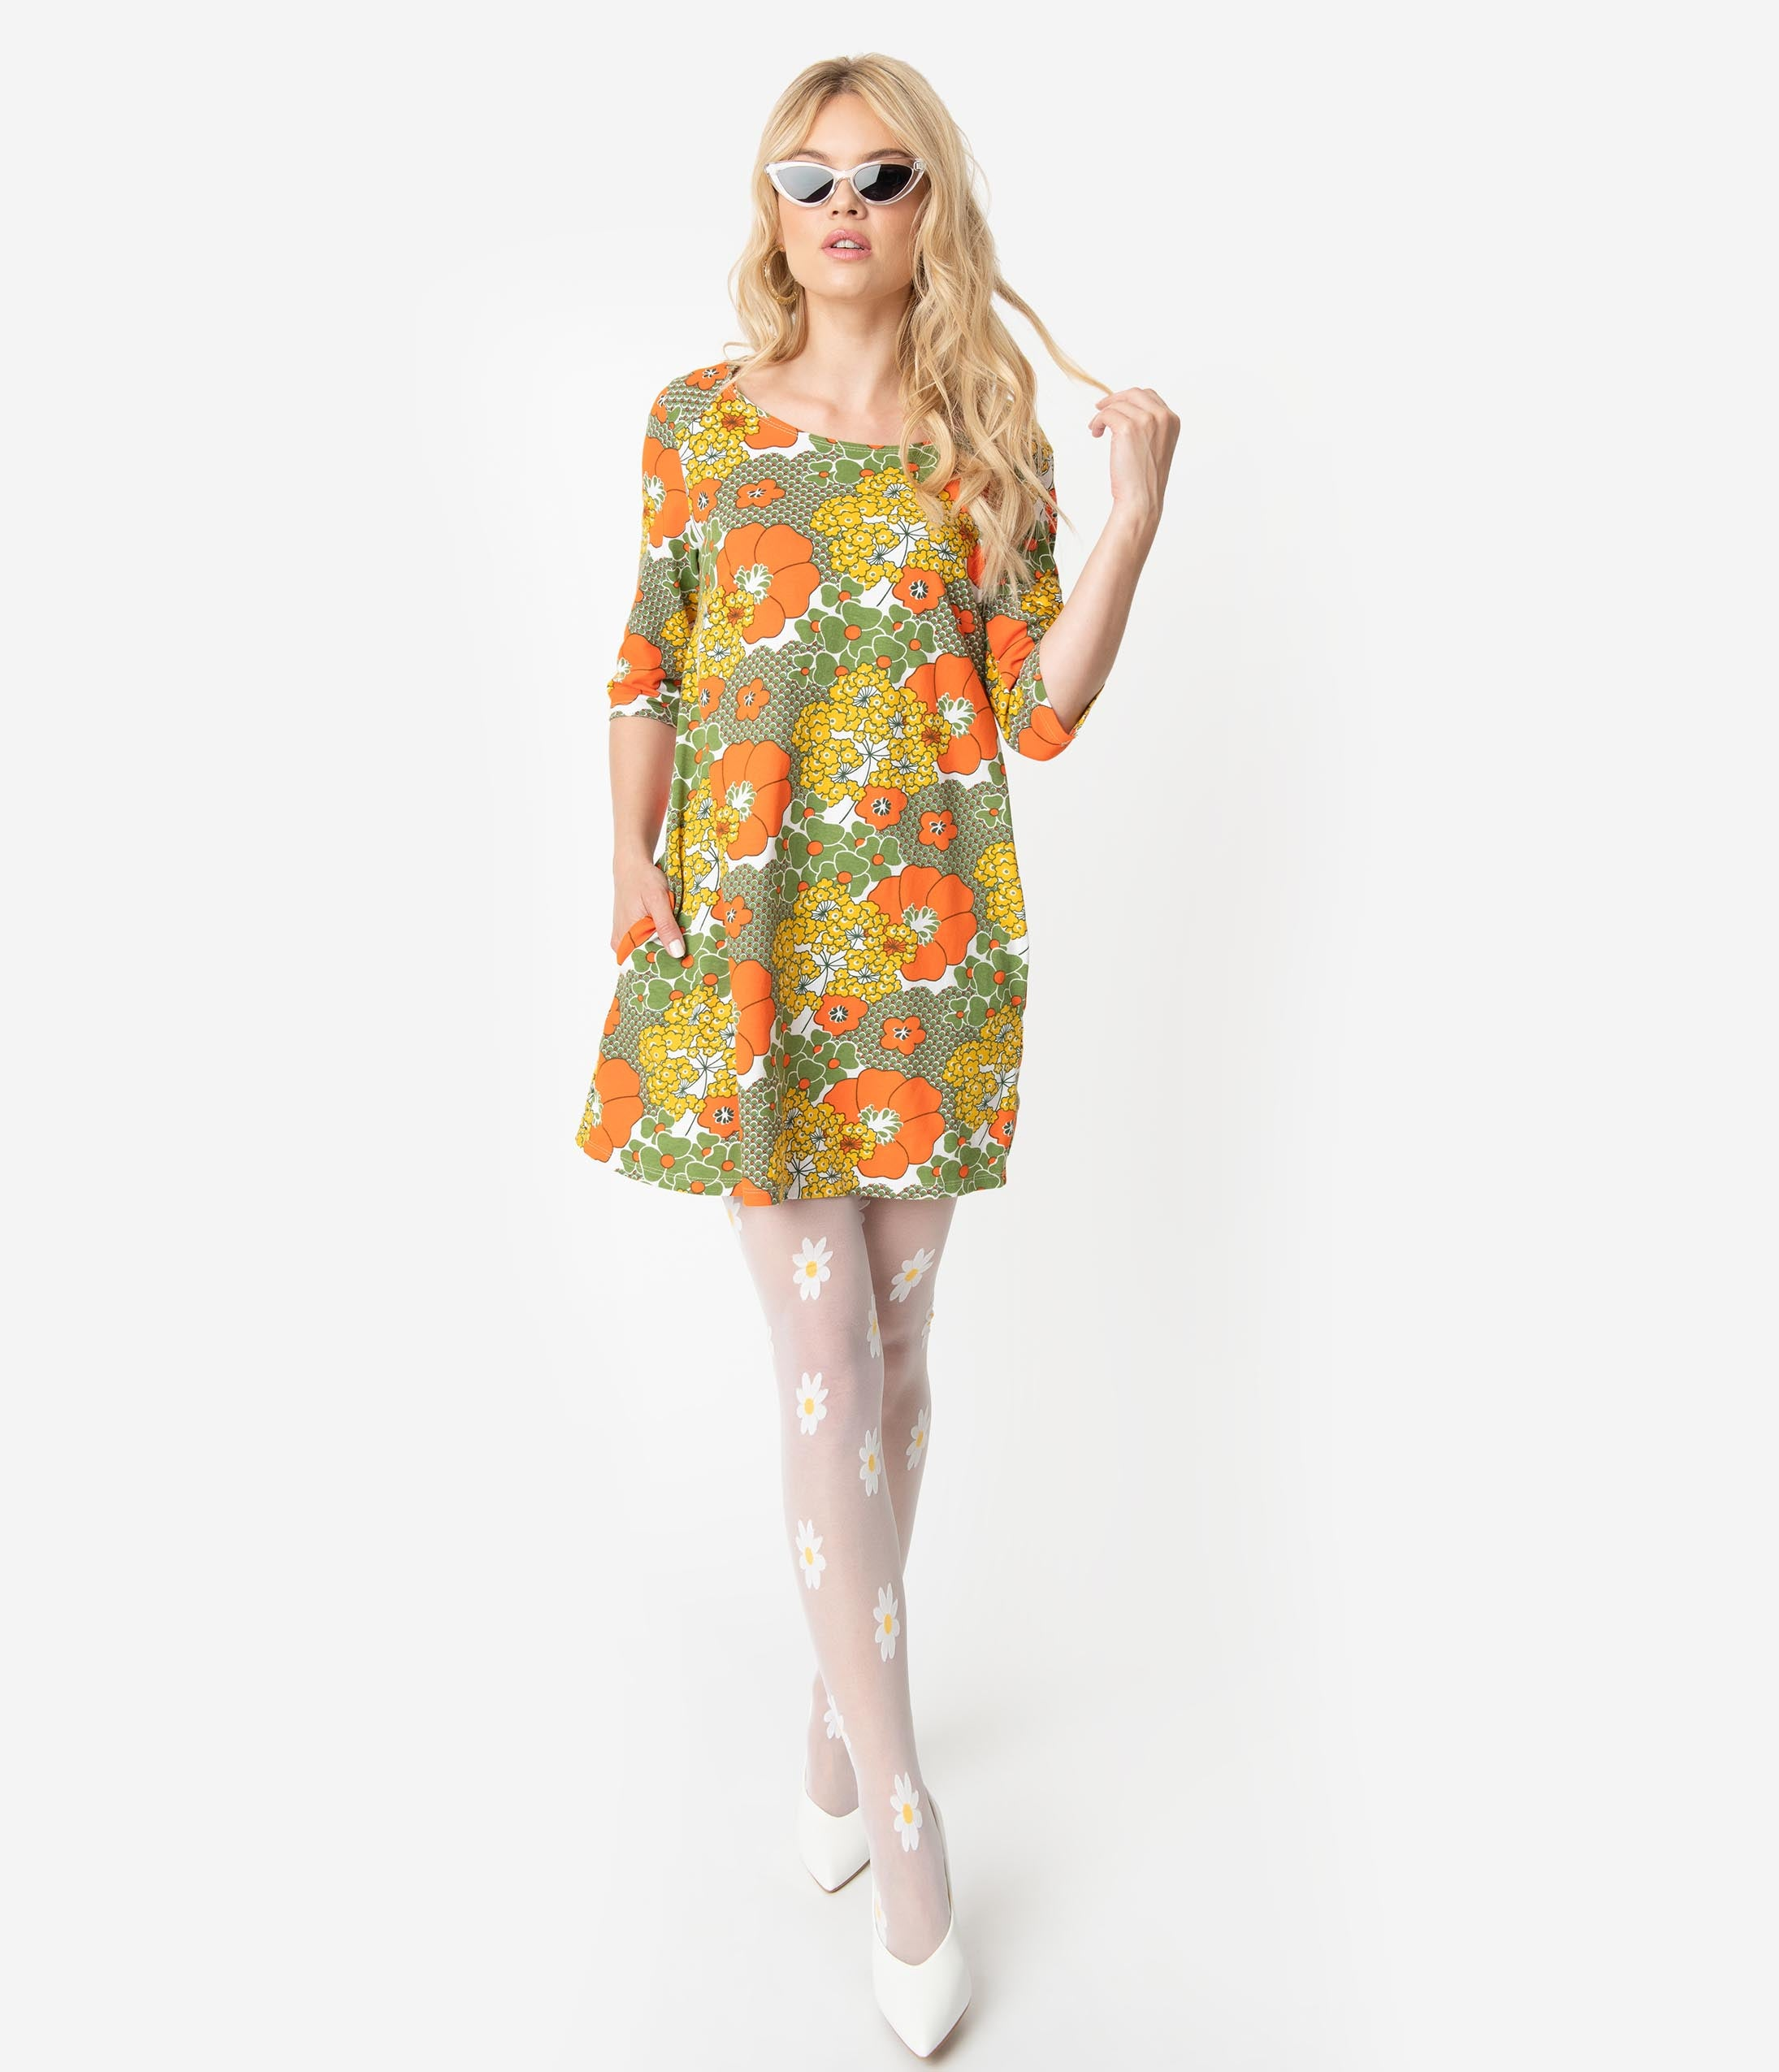 b807d5a8fb0dd 50 Vintage Inspired Clothing Stores 1960S Style Olive Green Orange Retro  Floral Print Cotton Tunic Dress